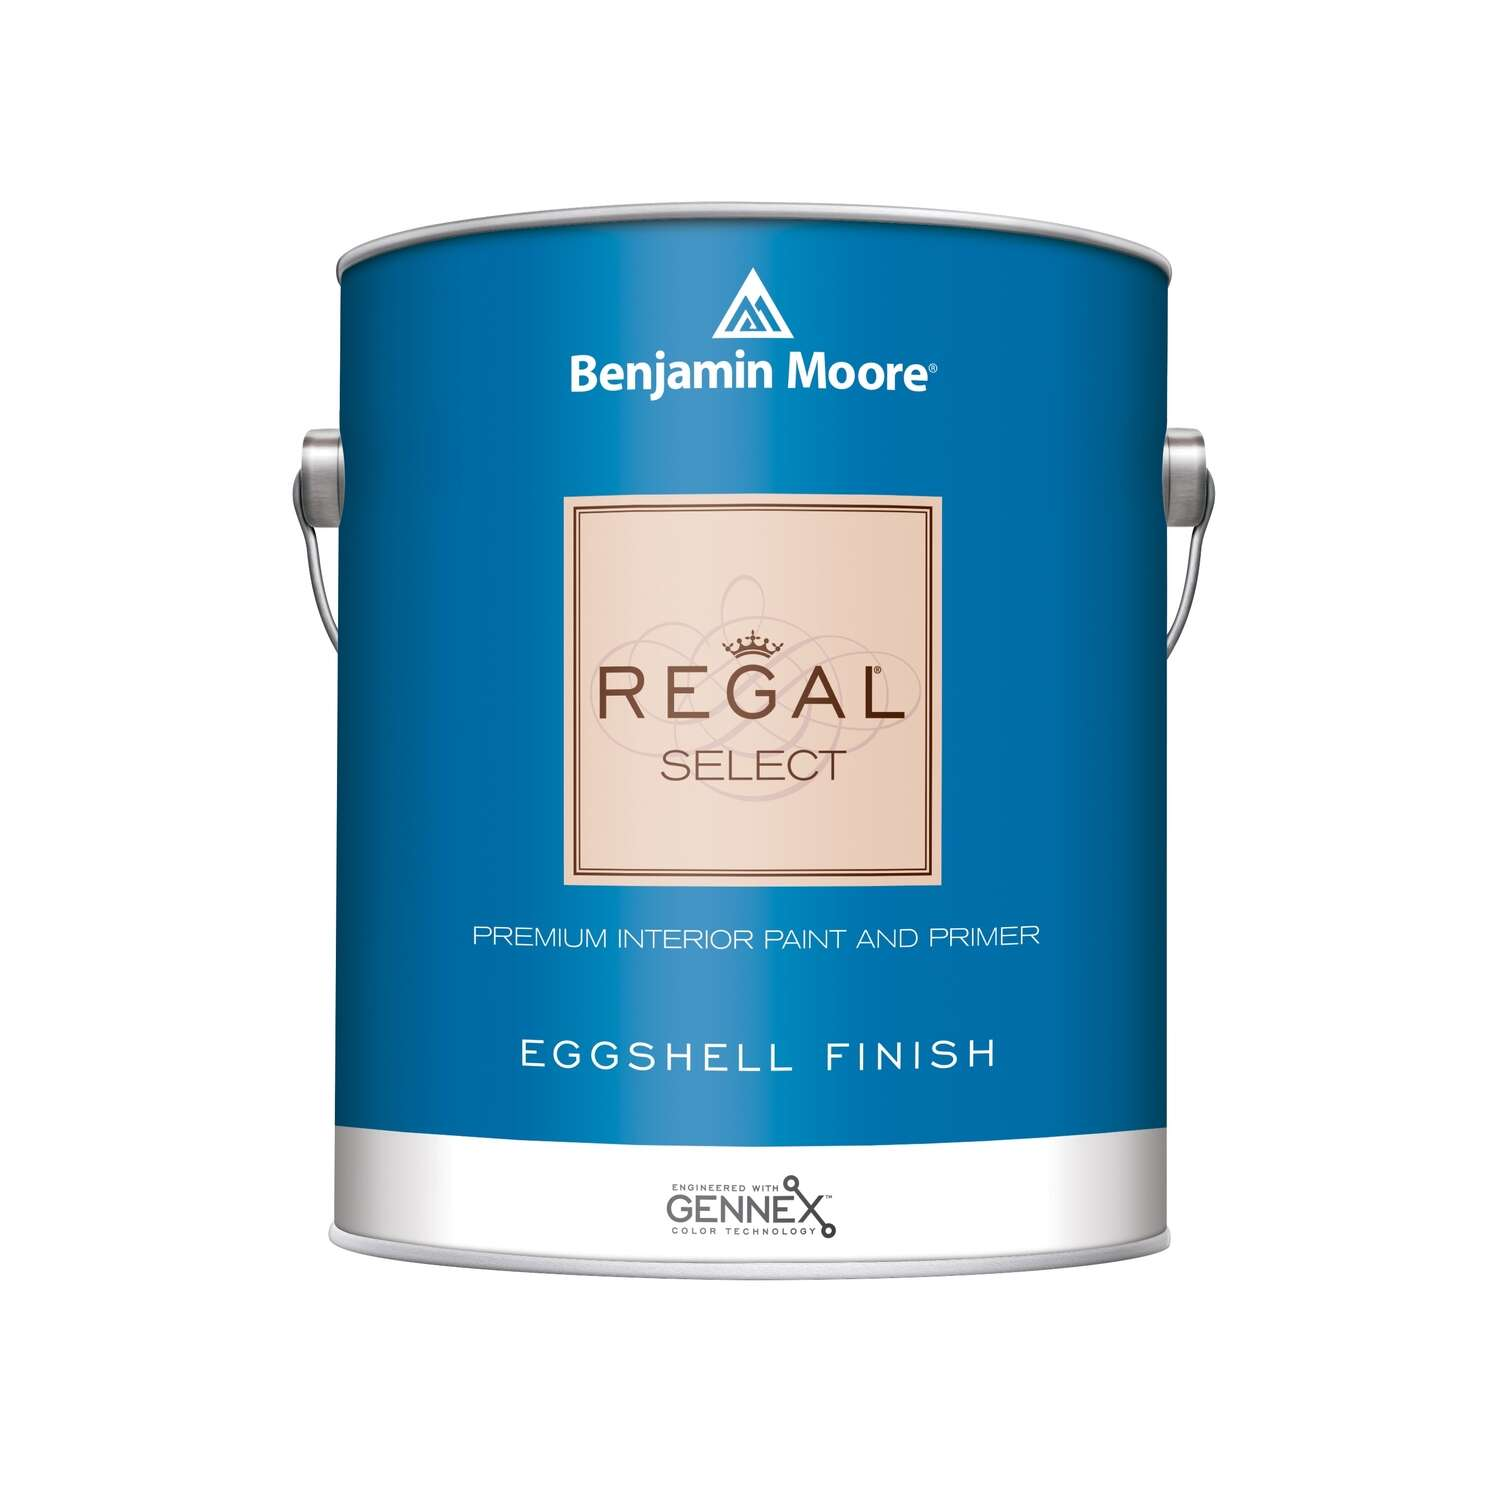 Benjamin Moore  Regal  Eggshell  Base 4  Acrylic  Paint  Indoor  1 gal.